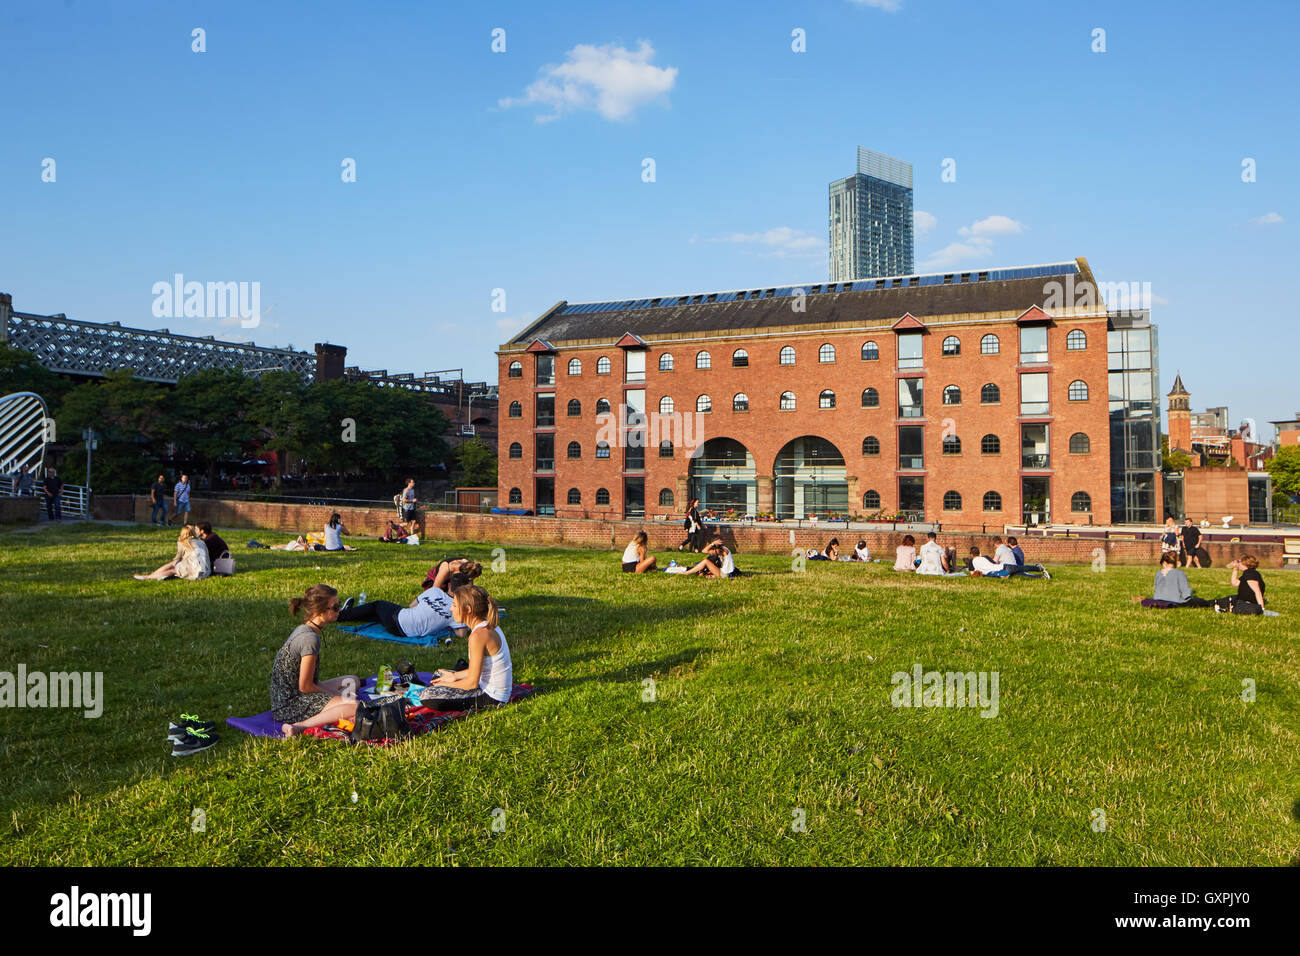 Manchester castlefield  Merchant's Warehouse    Castlefield loft style offices  urban landscape brick mill waterfront - Stock Image